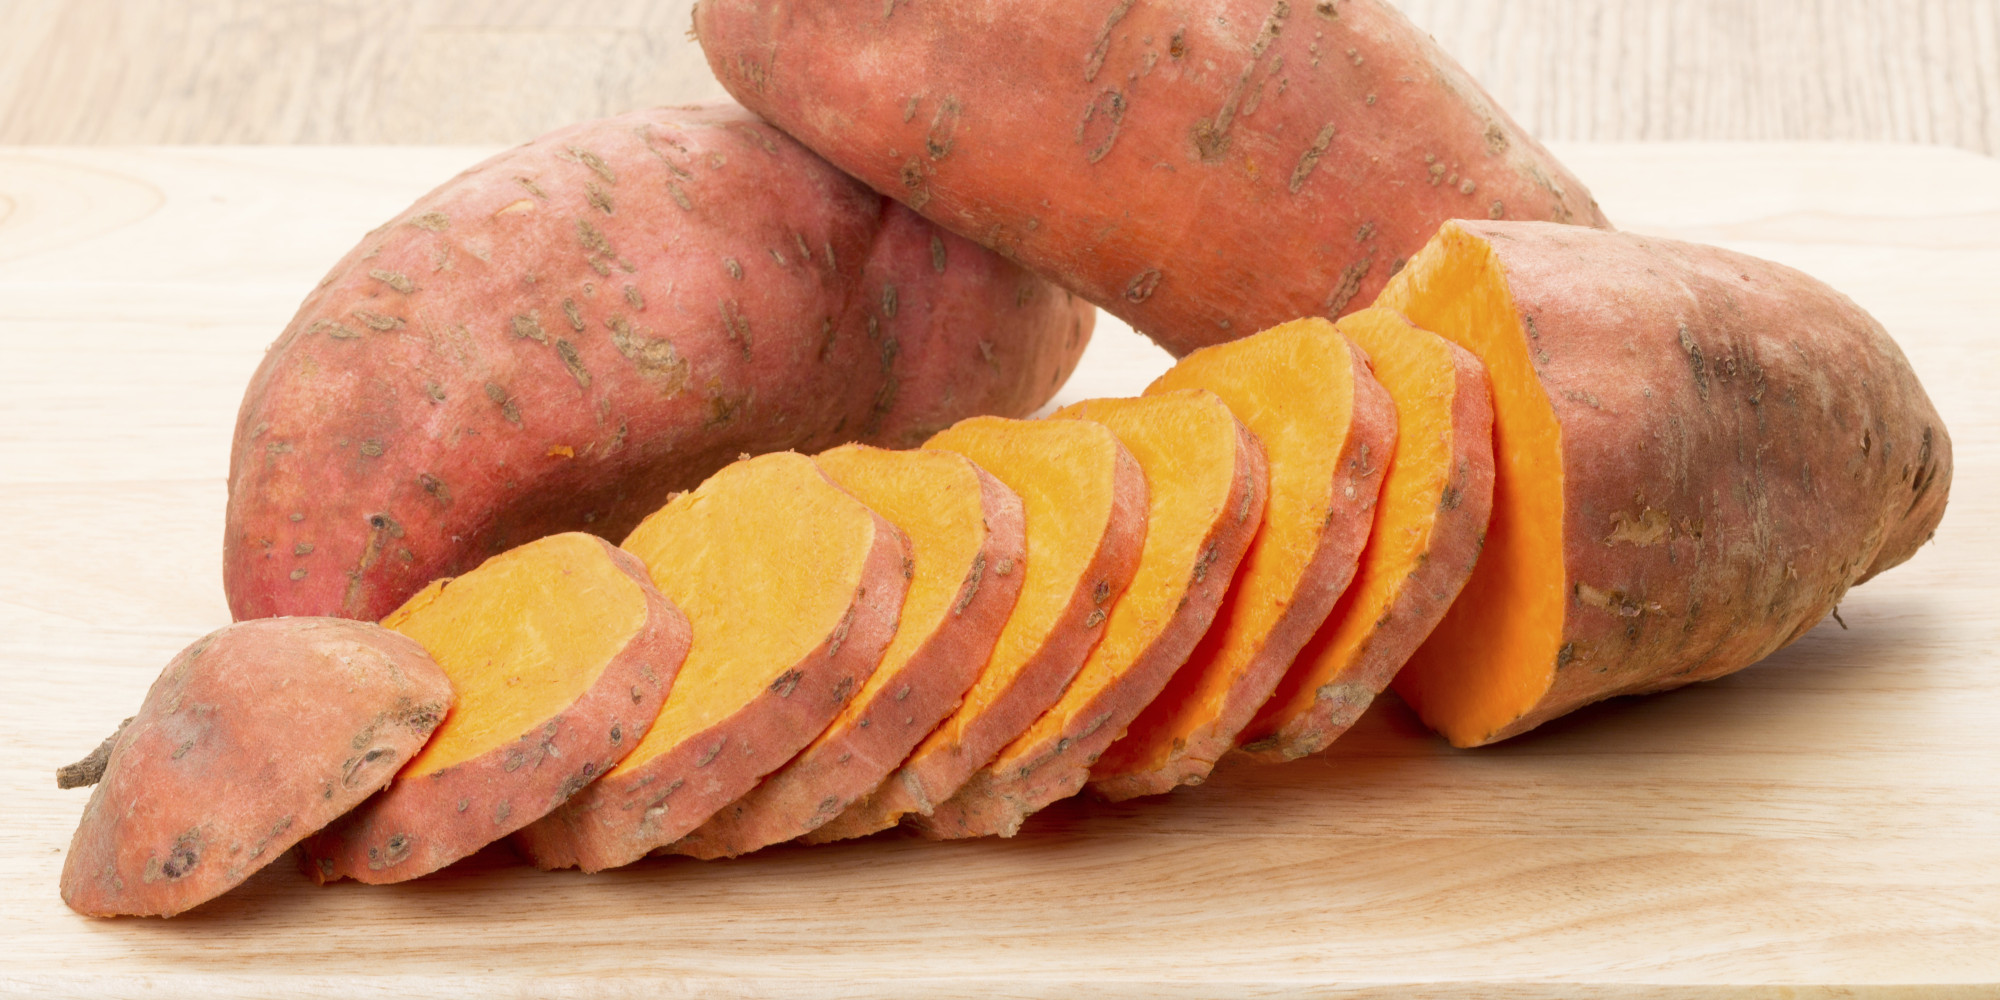 o-SLICED-SWEET-POTATO-facebook.jpg